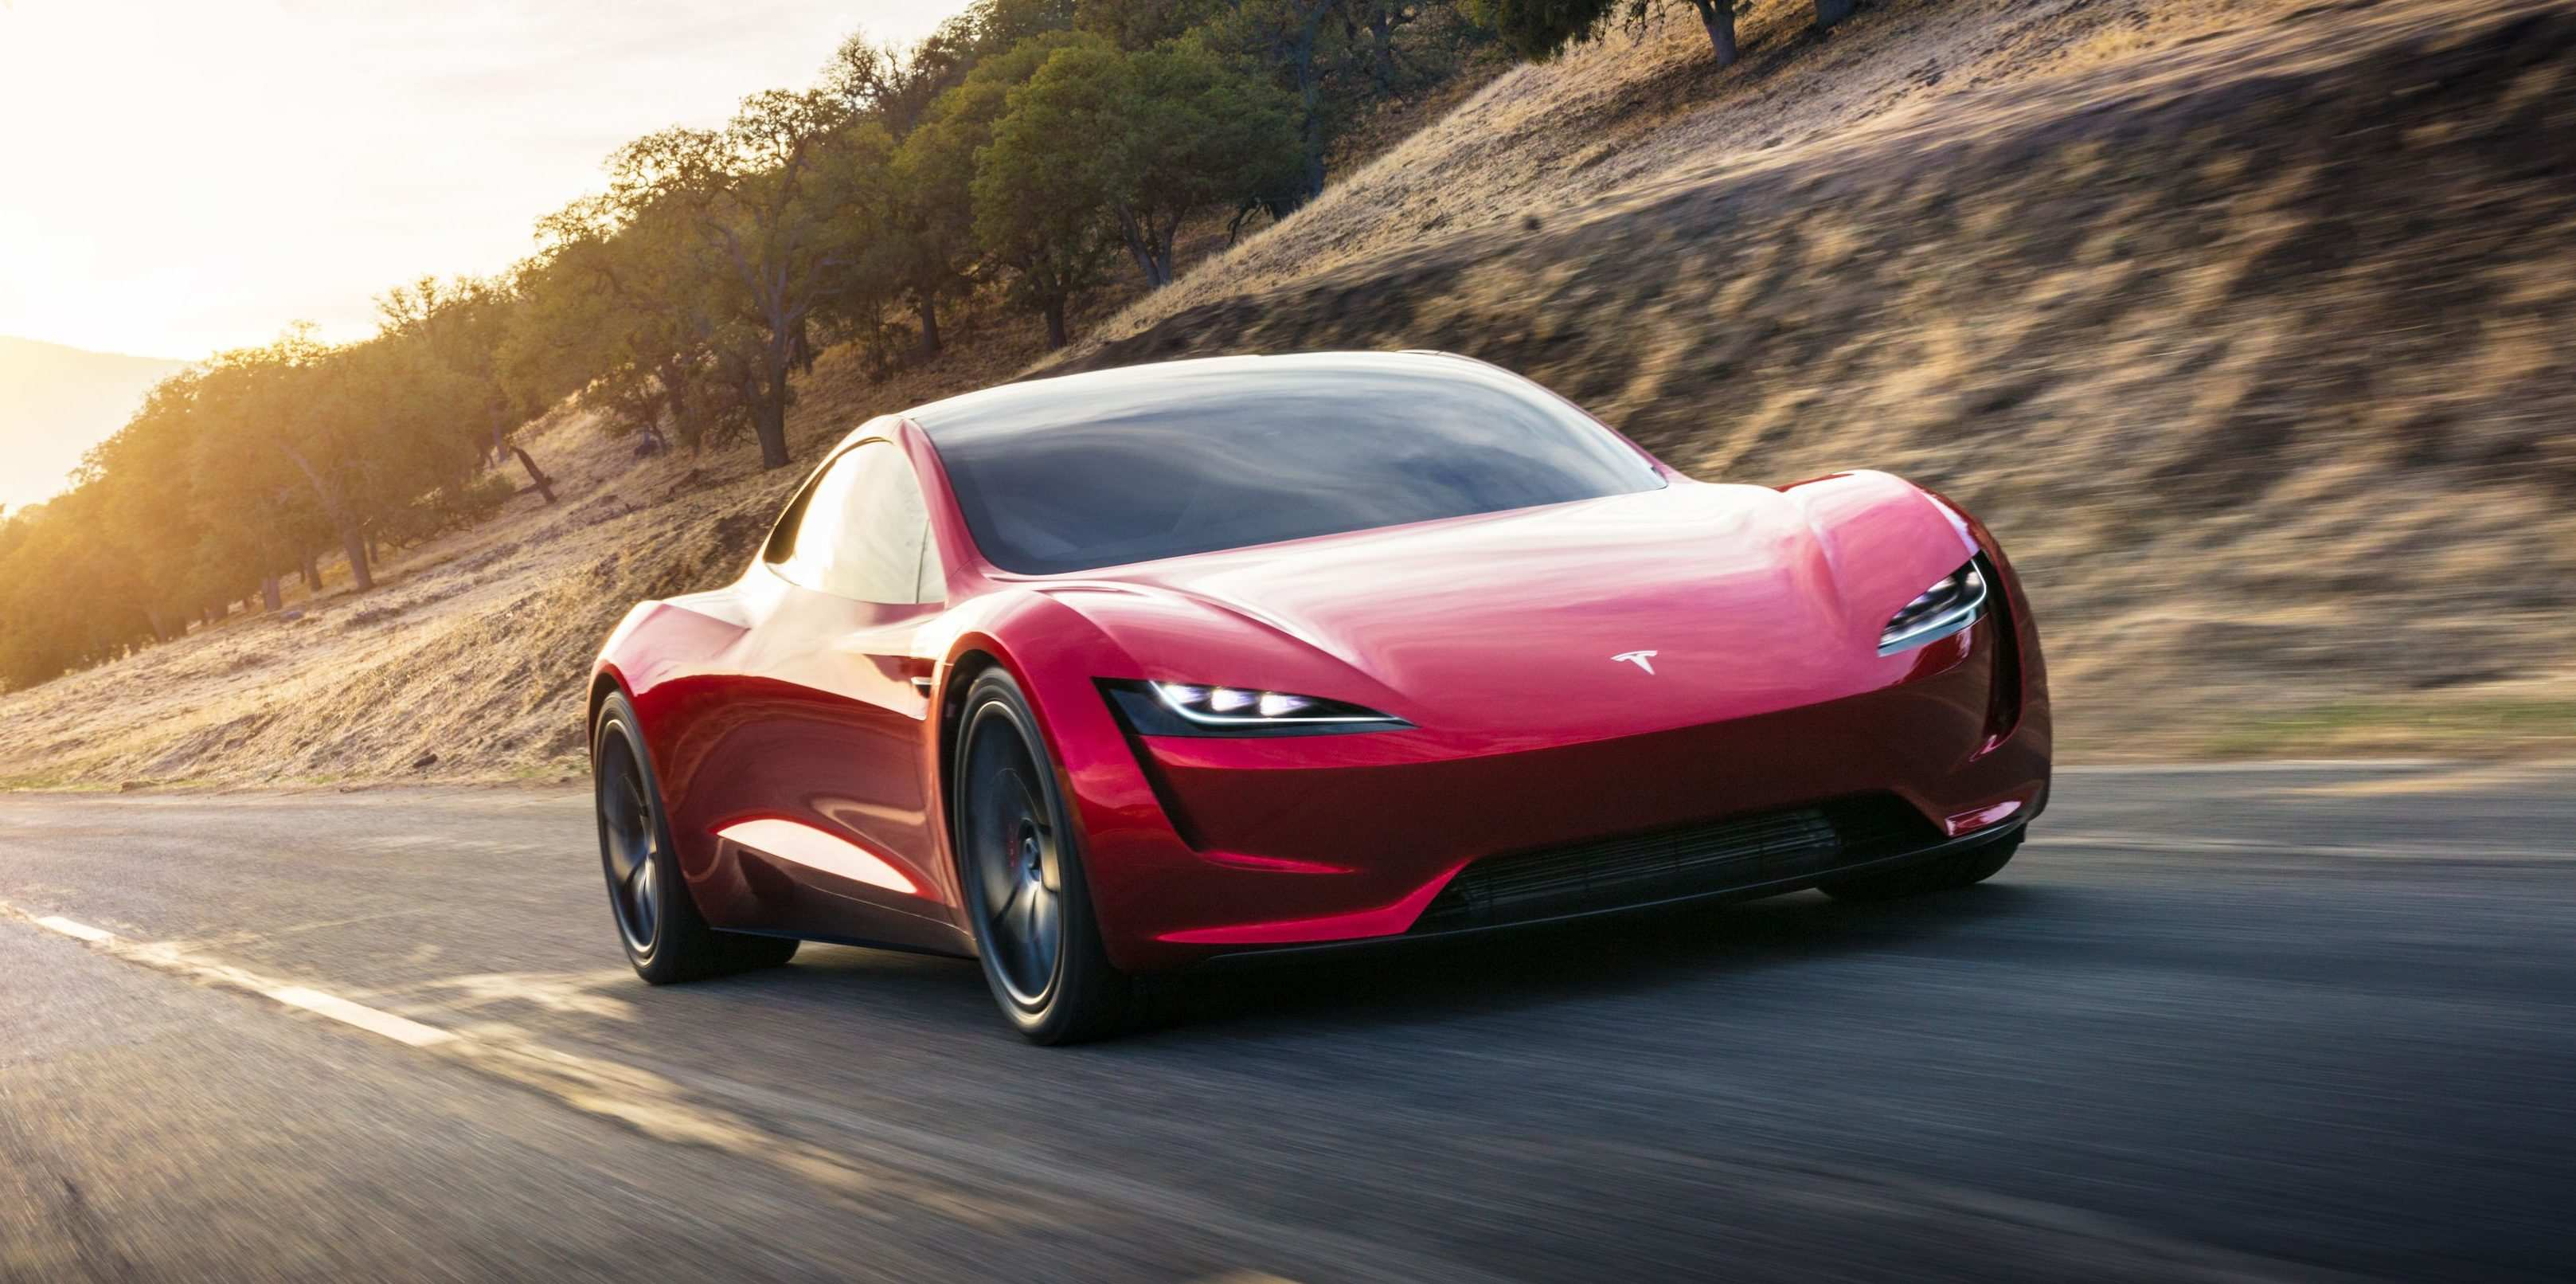 53 Best 2020 Tesla Roadster Battery Redesign and Concept